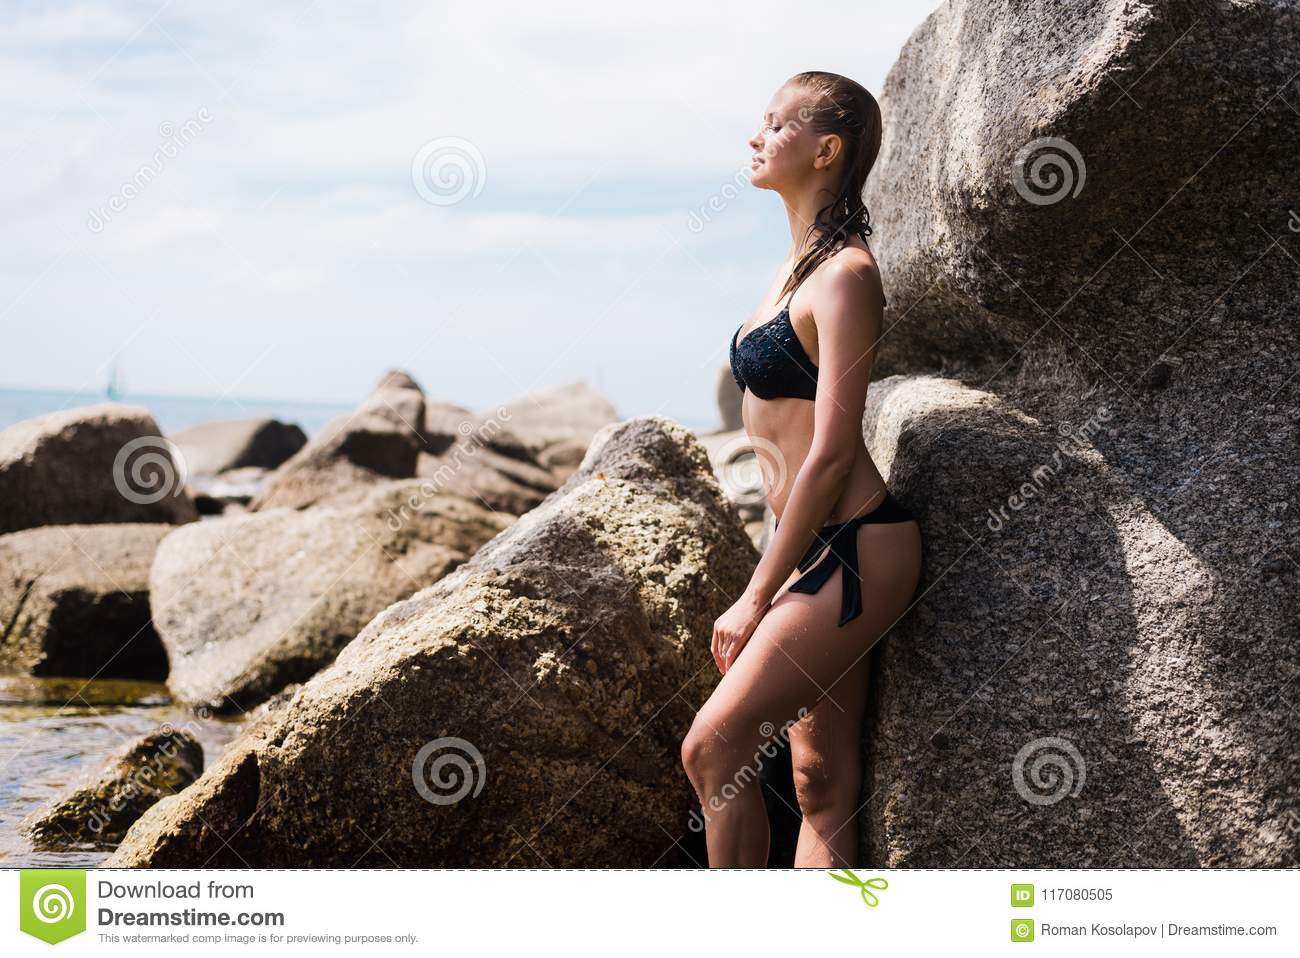 96bedddcf54 young beautiful russian girl in little black bikini. Slim body woman on  tropical beach in